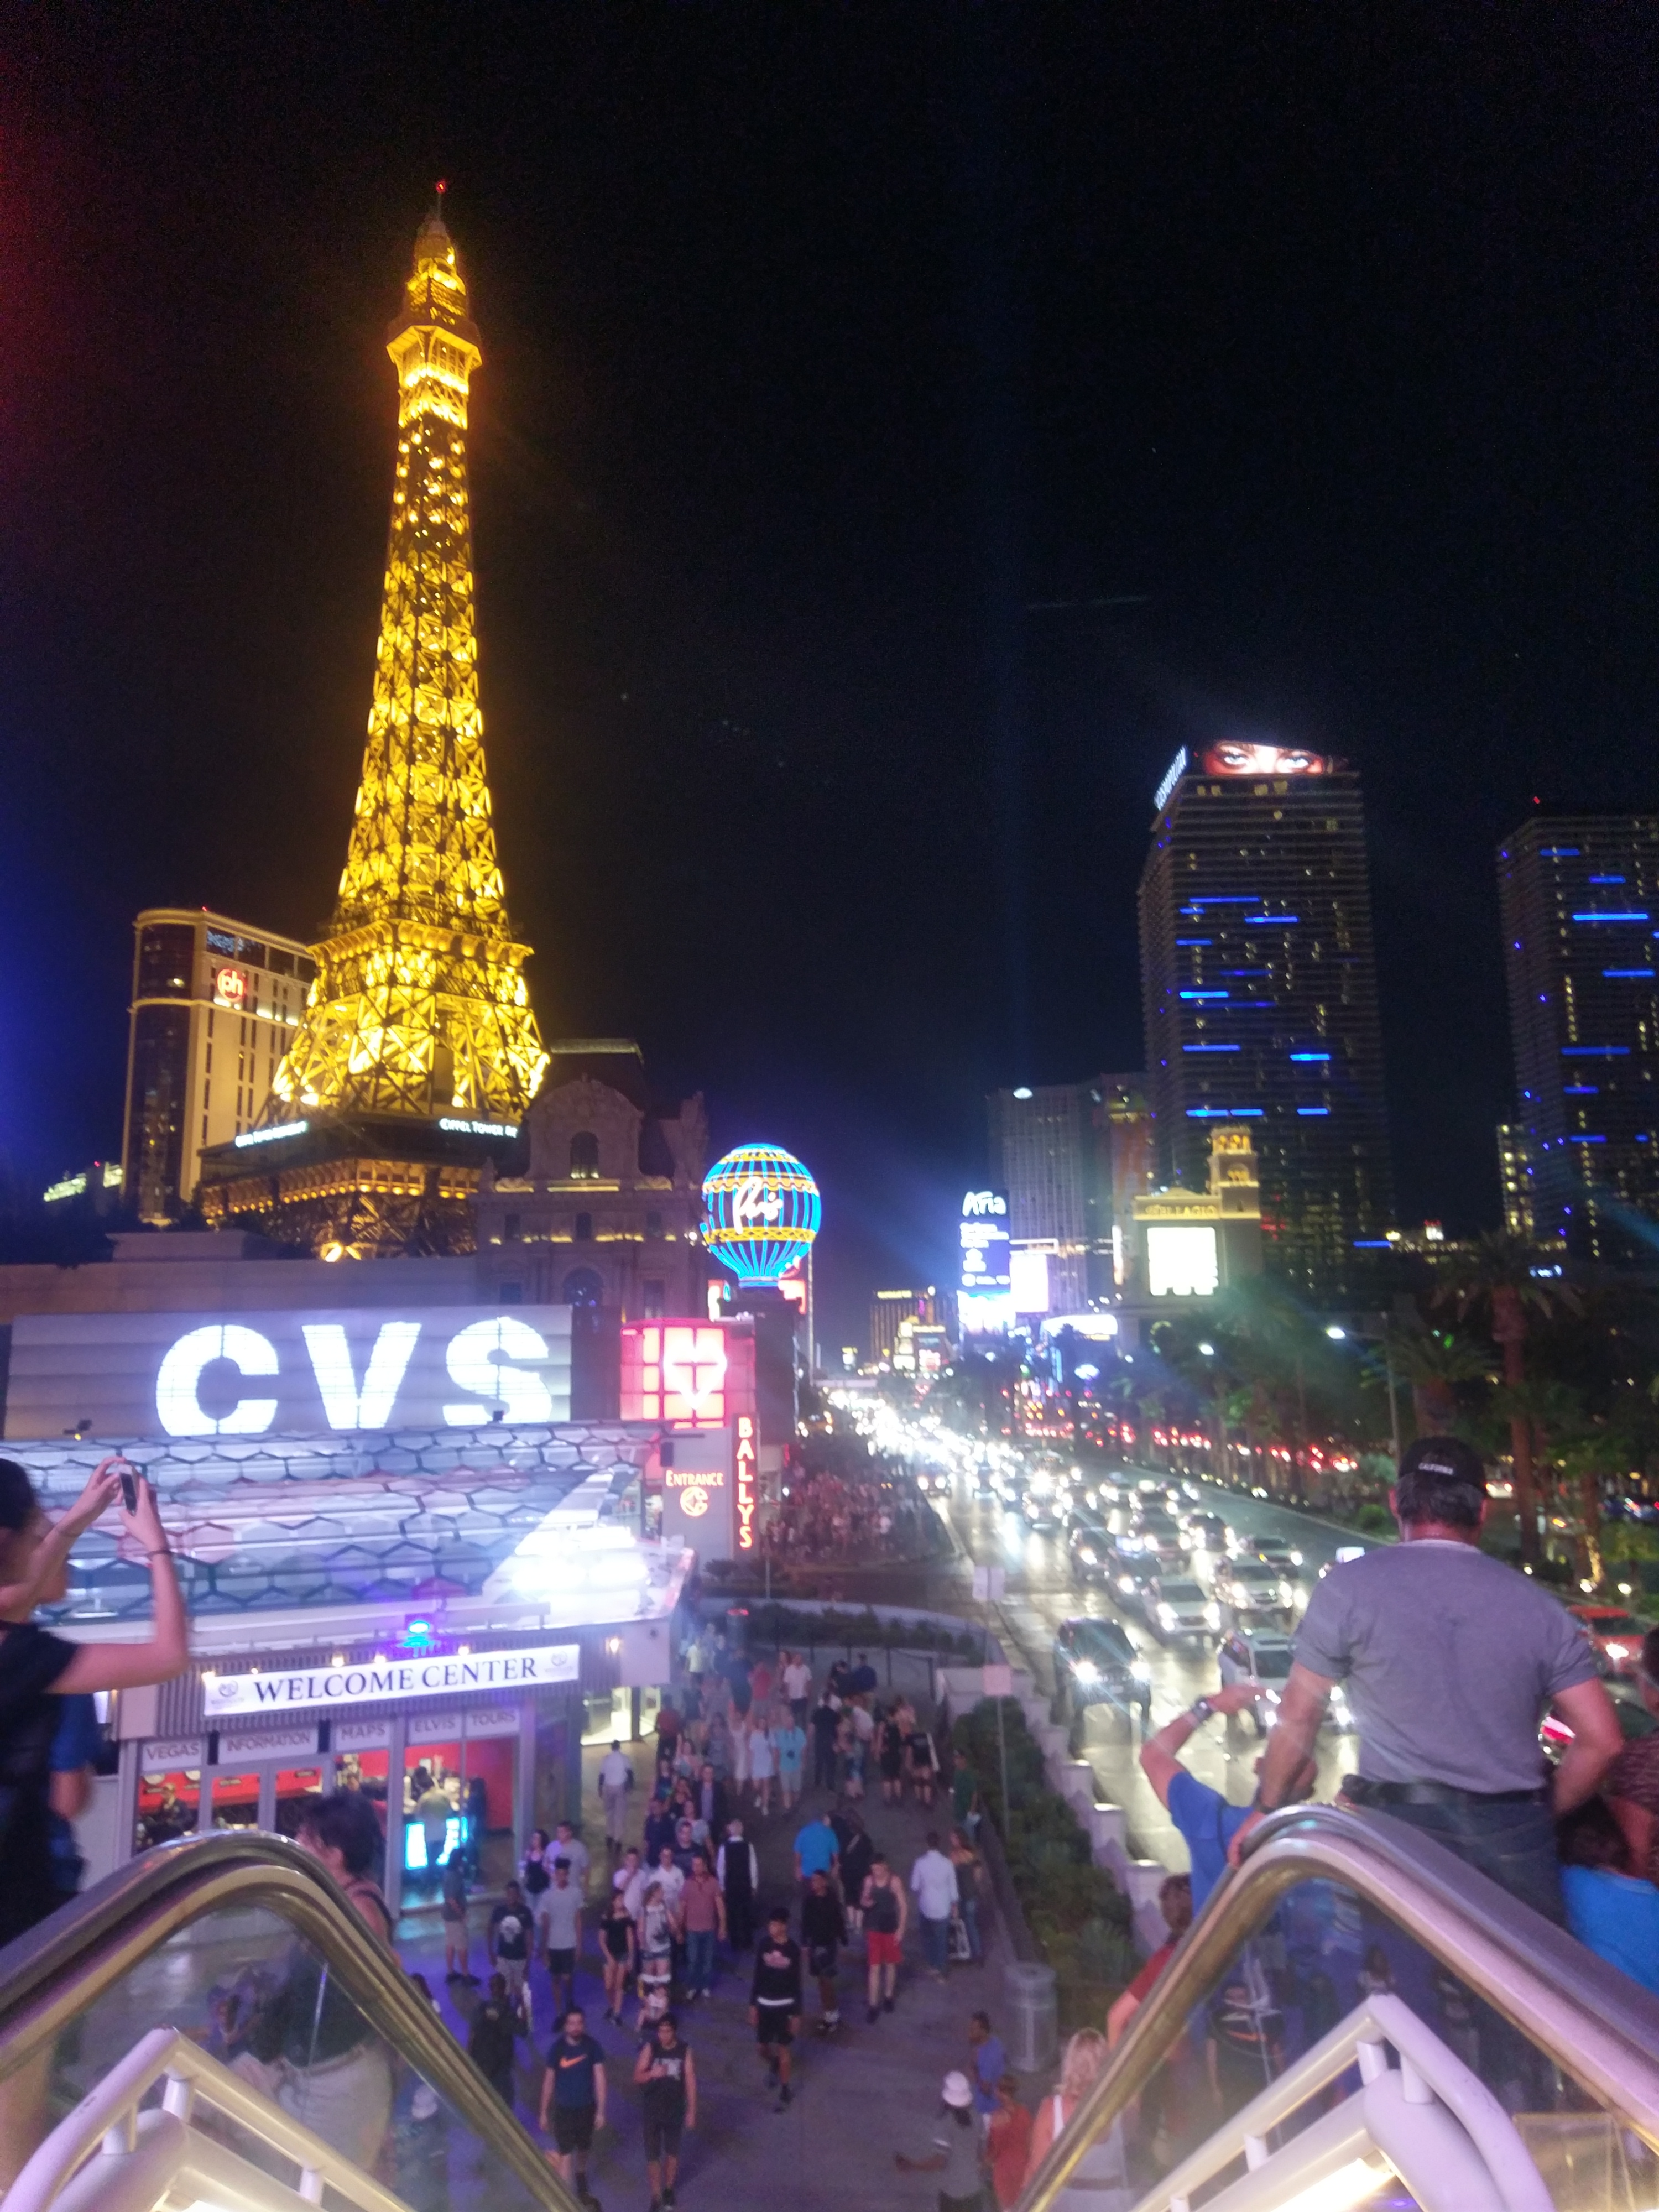 The other side to Las Vegas, Nevada